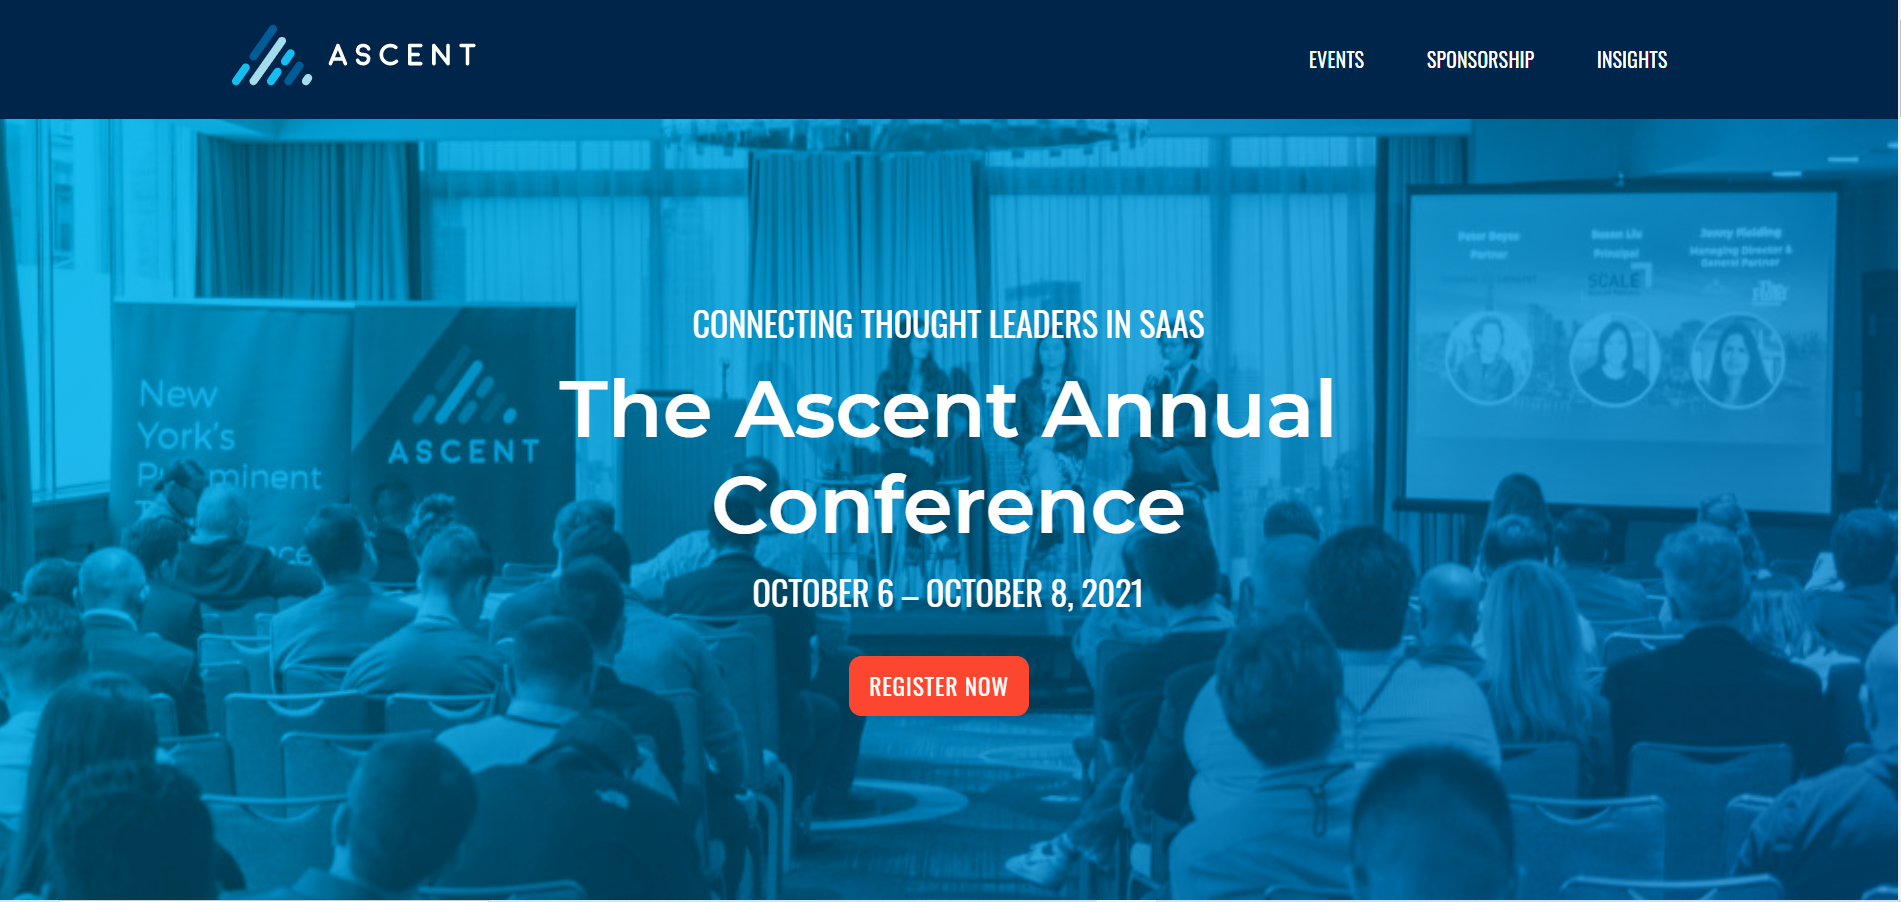 The Ascent Annual Conference